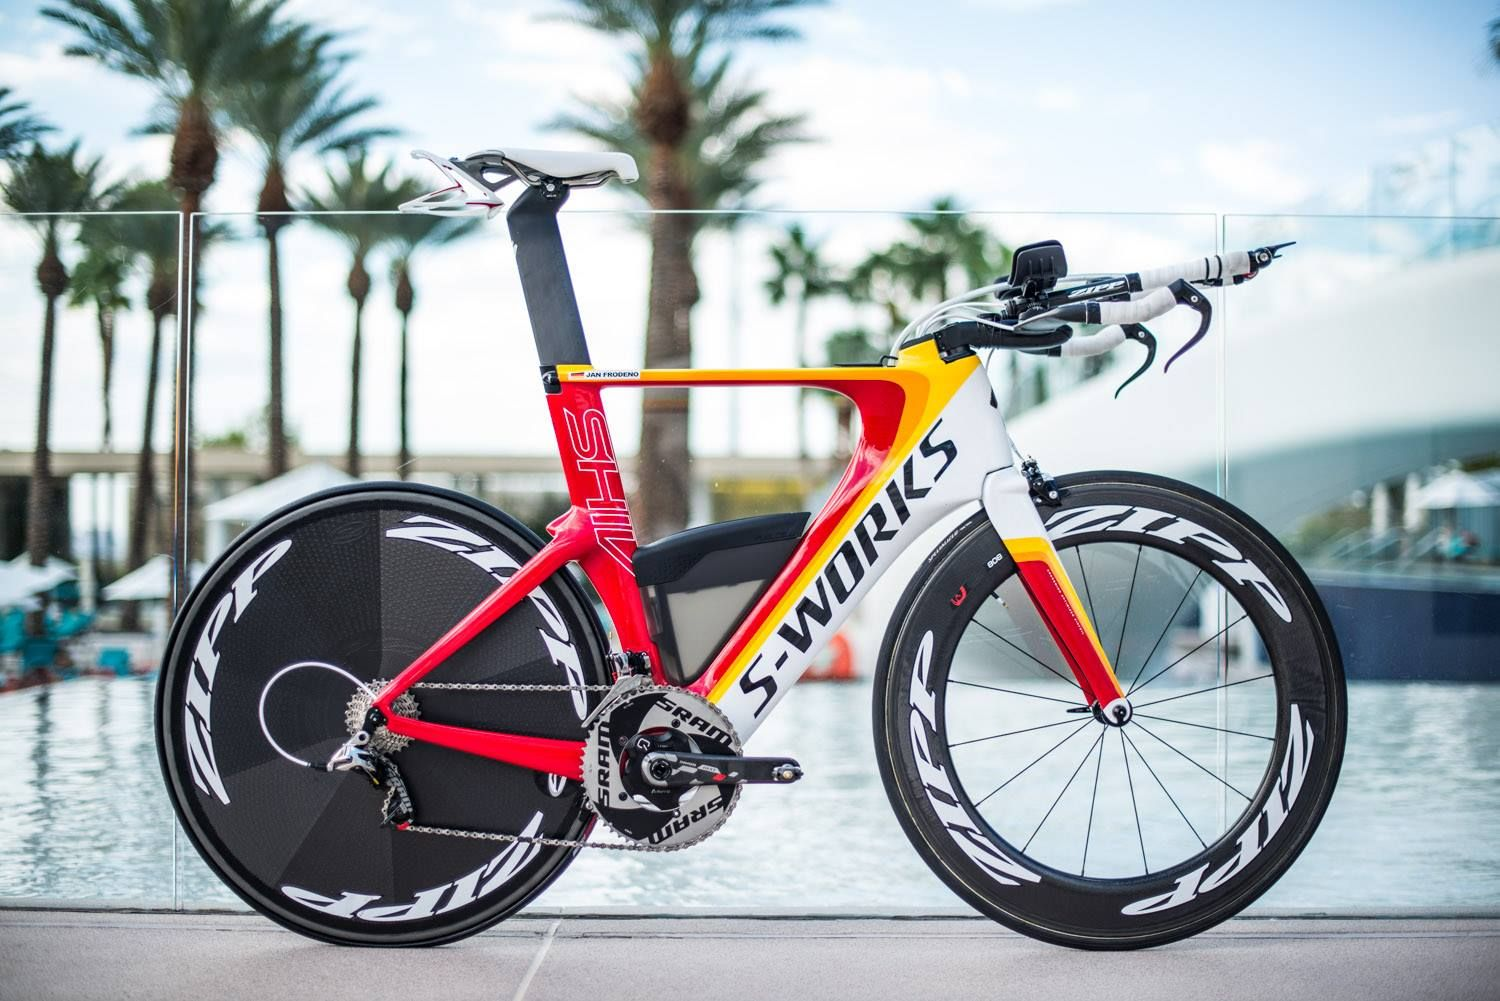 Jan Frodeno S Specialized Shiv Ironman 70 3 World Championship